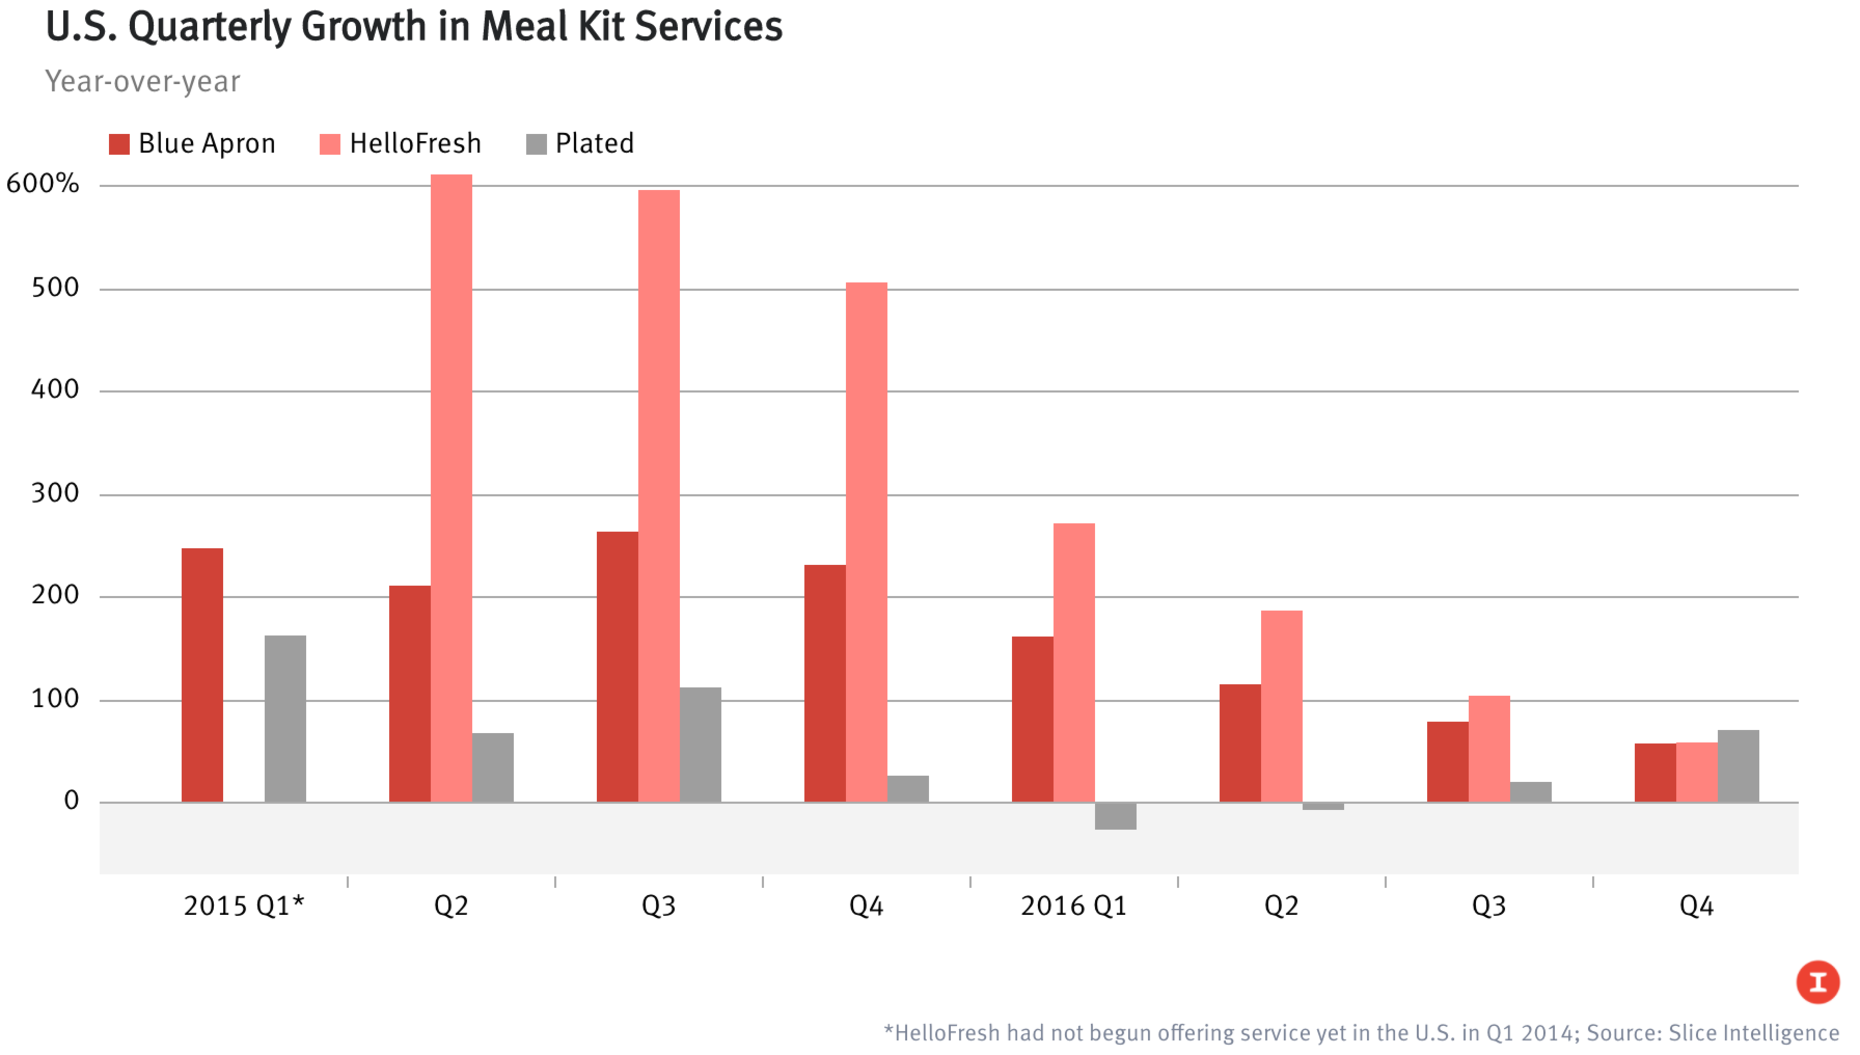 *No growth data available for HelloFresh in Q1 2015; Source: Slice Intelligence